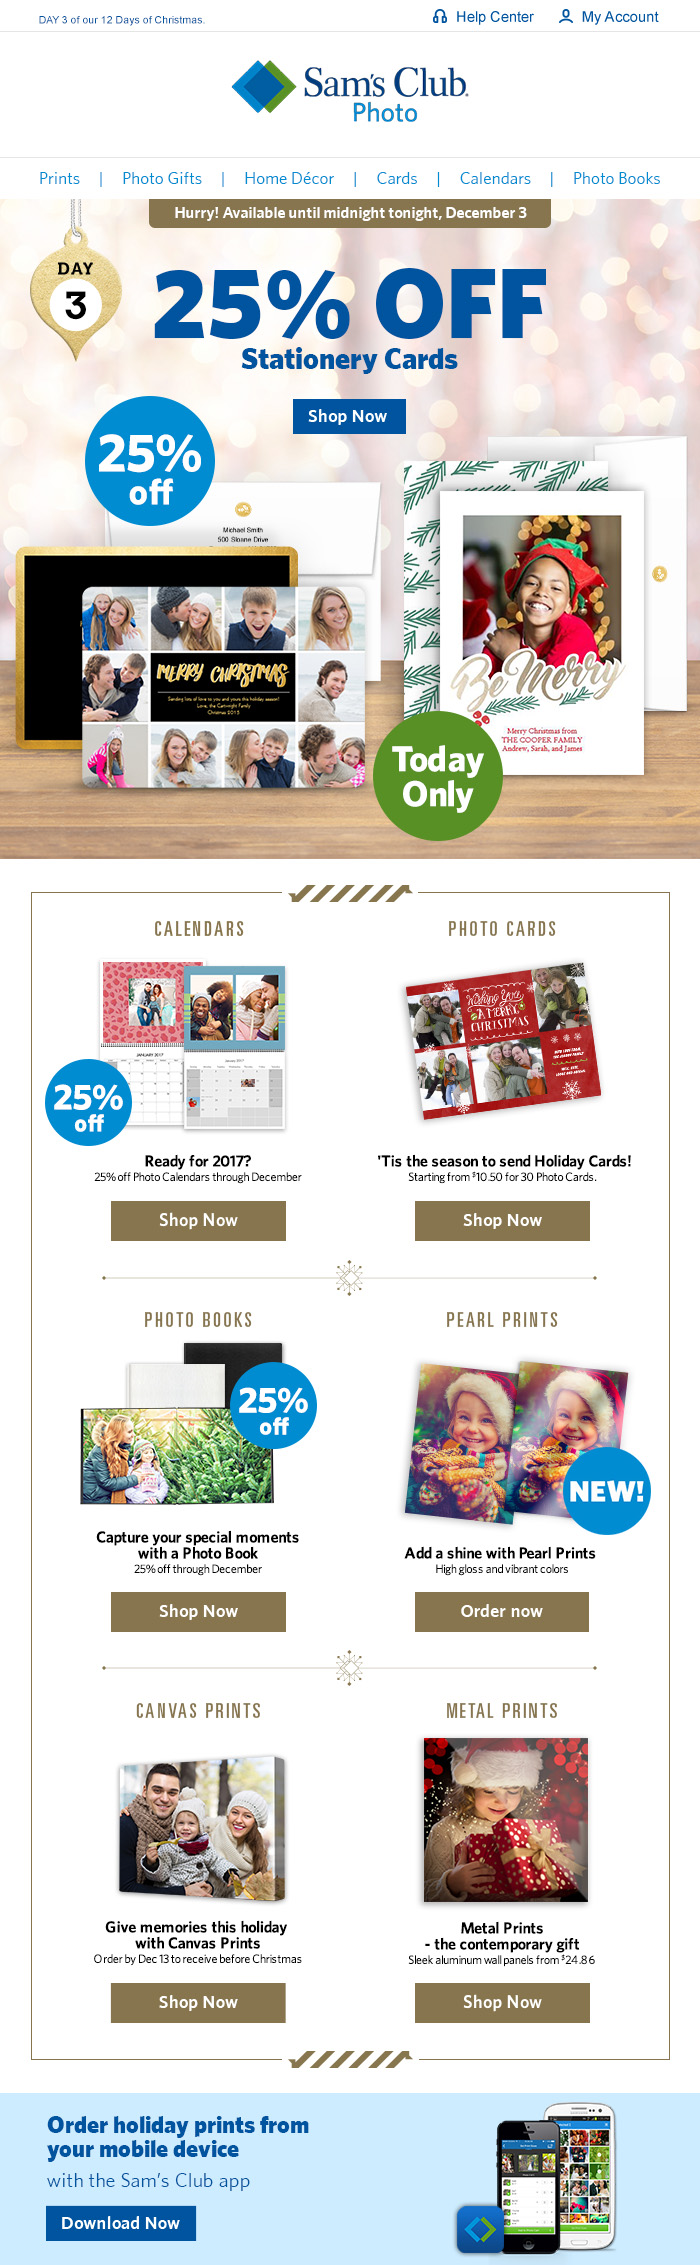 sams club christmas campaign